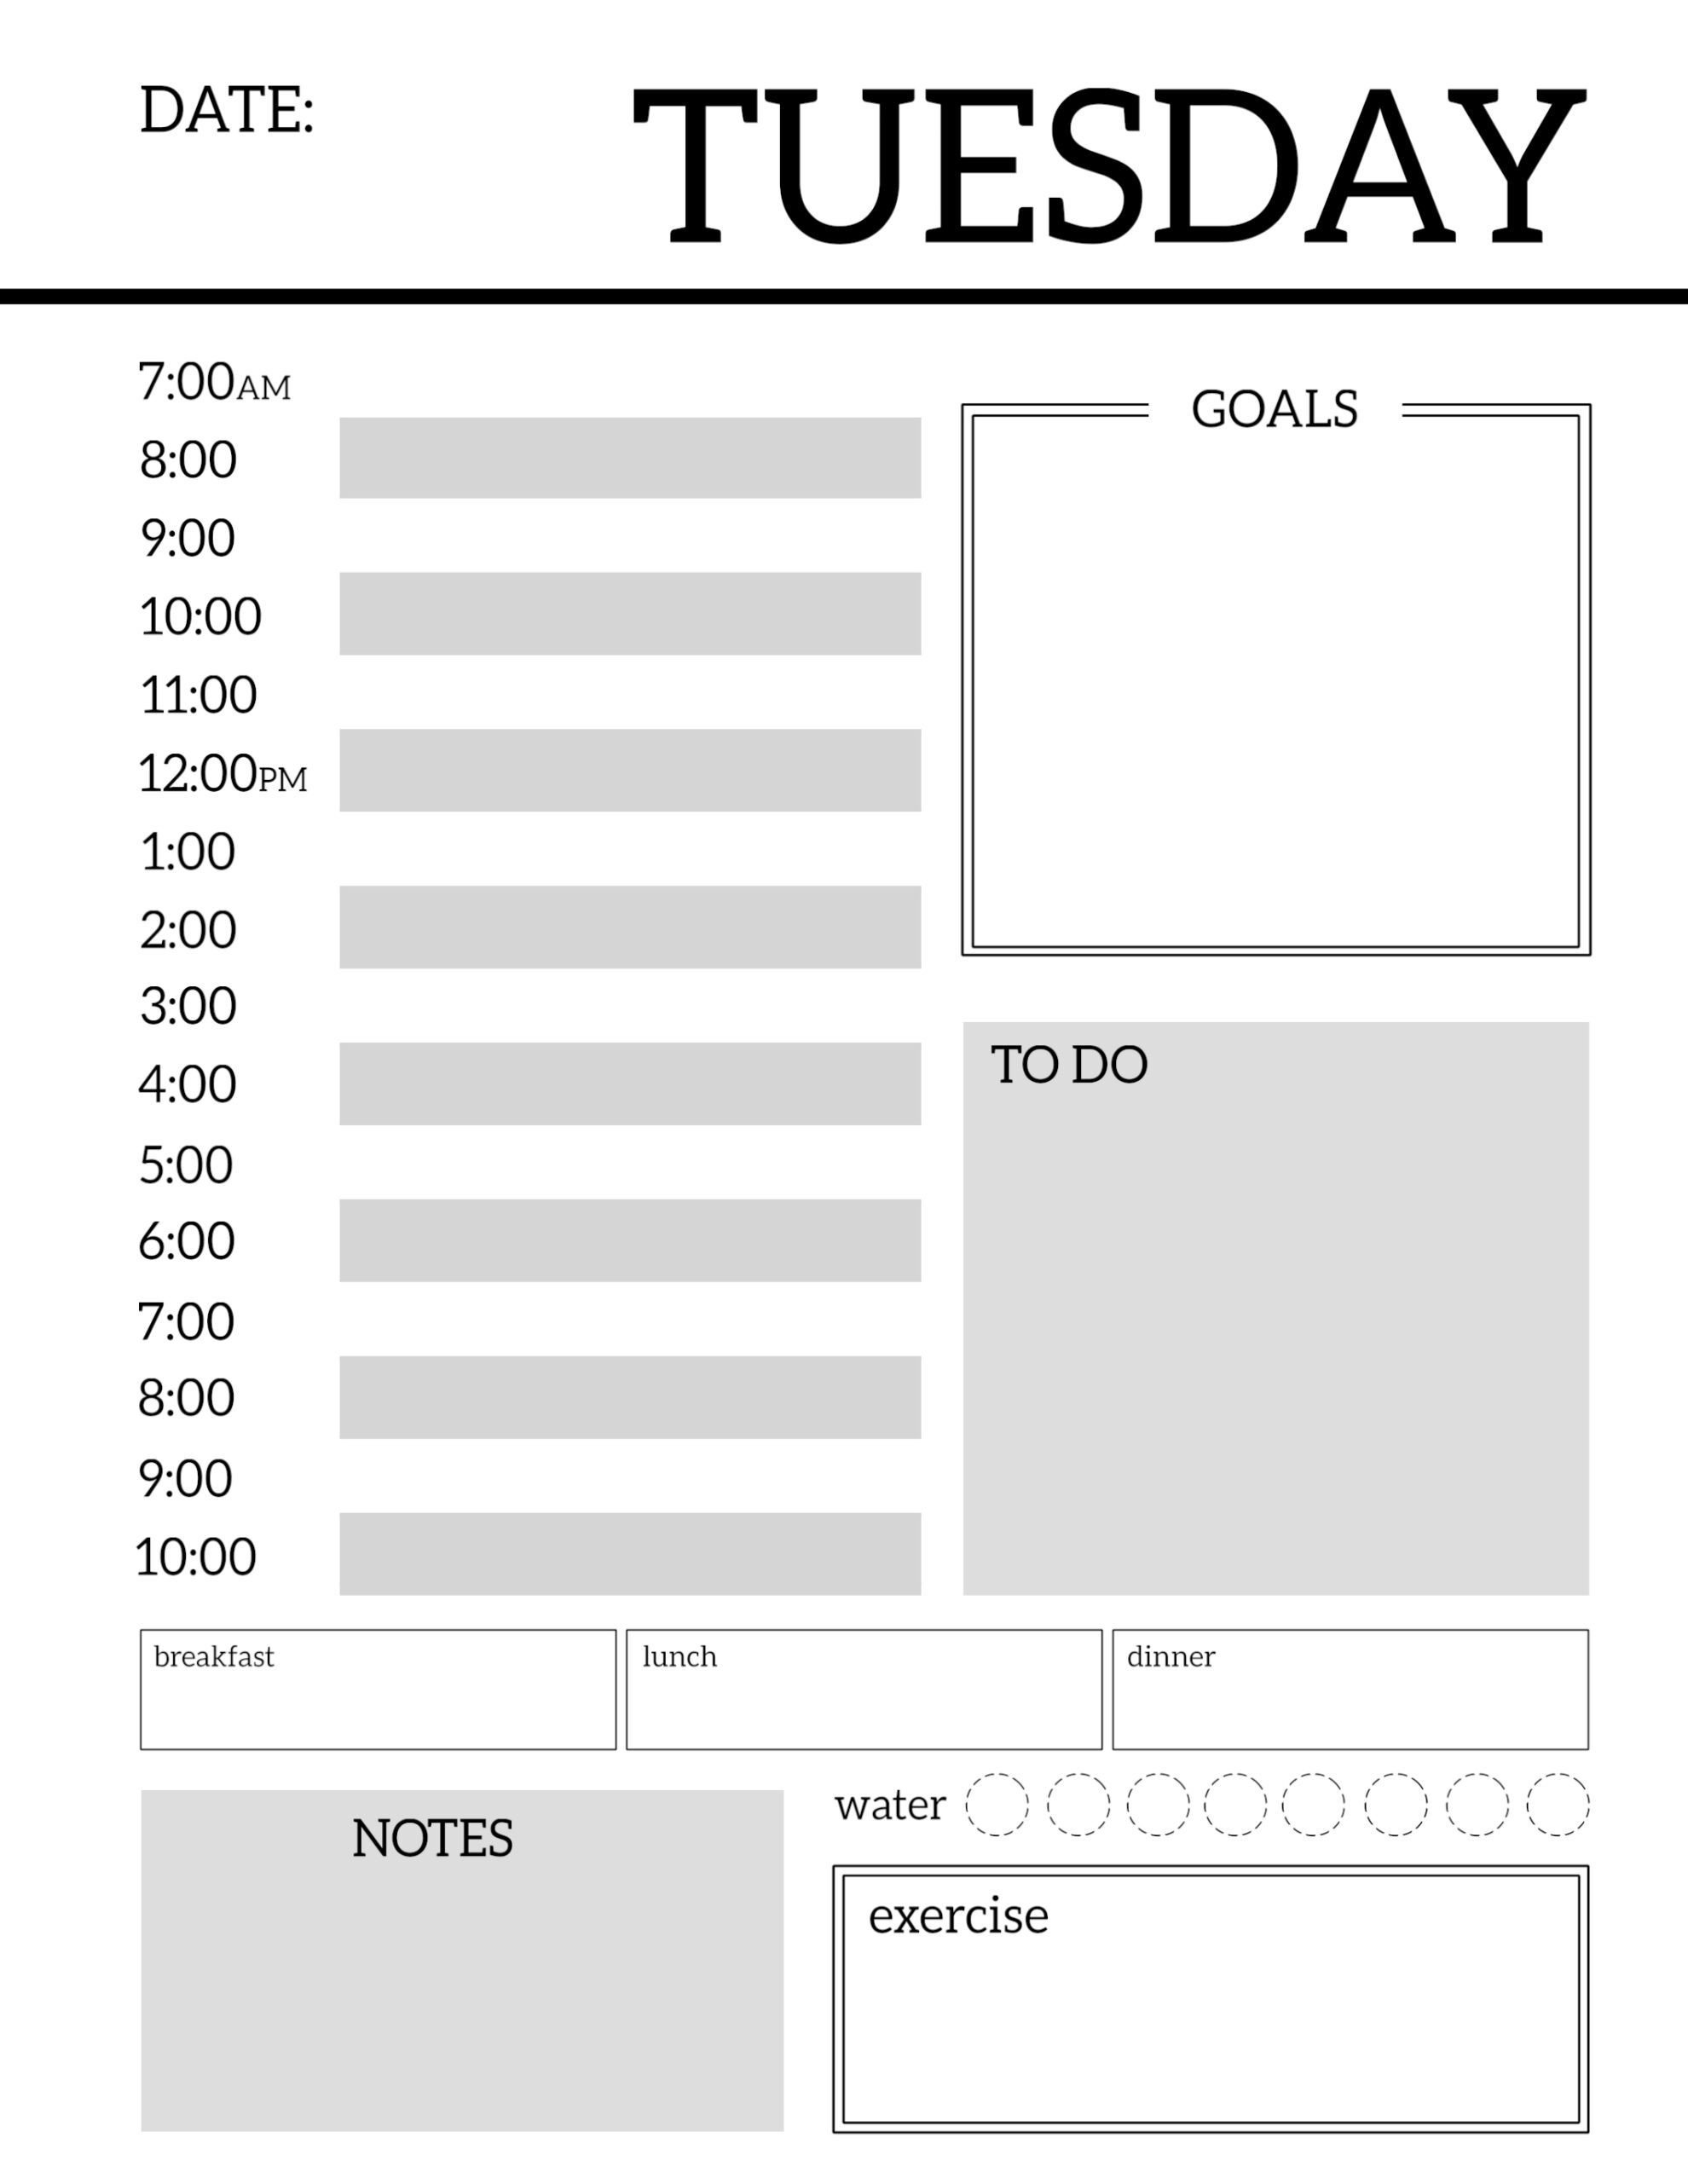 Daily Schedule Template Printable Daily Planner Printable Template Sheets Paper Trail Design